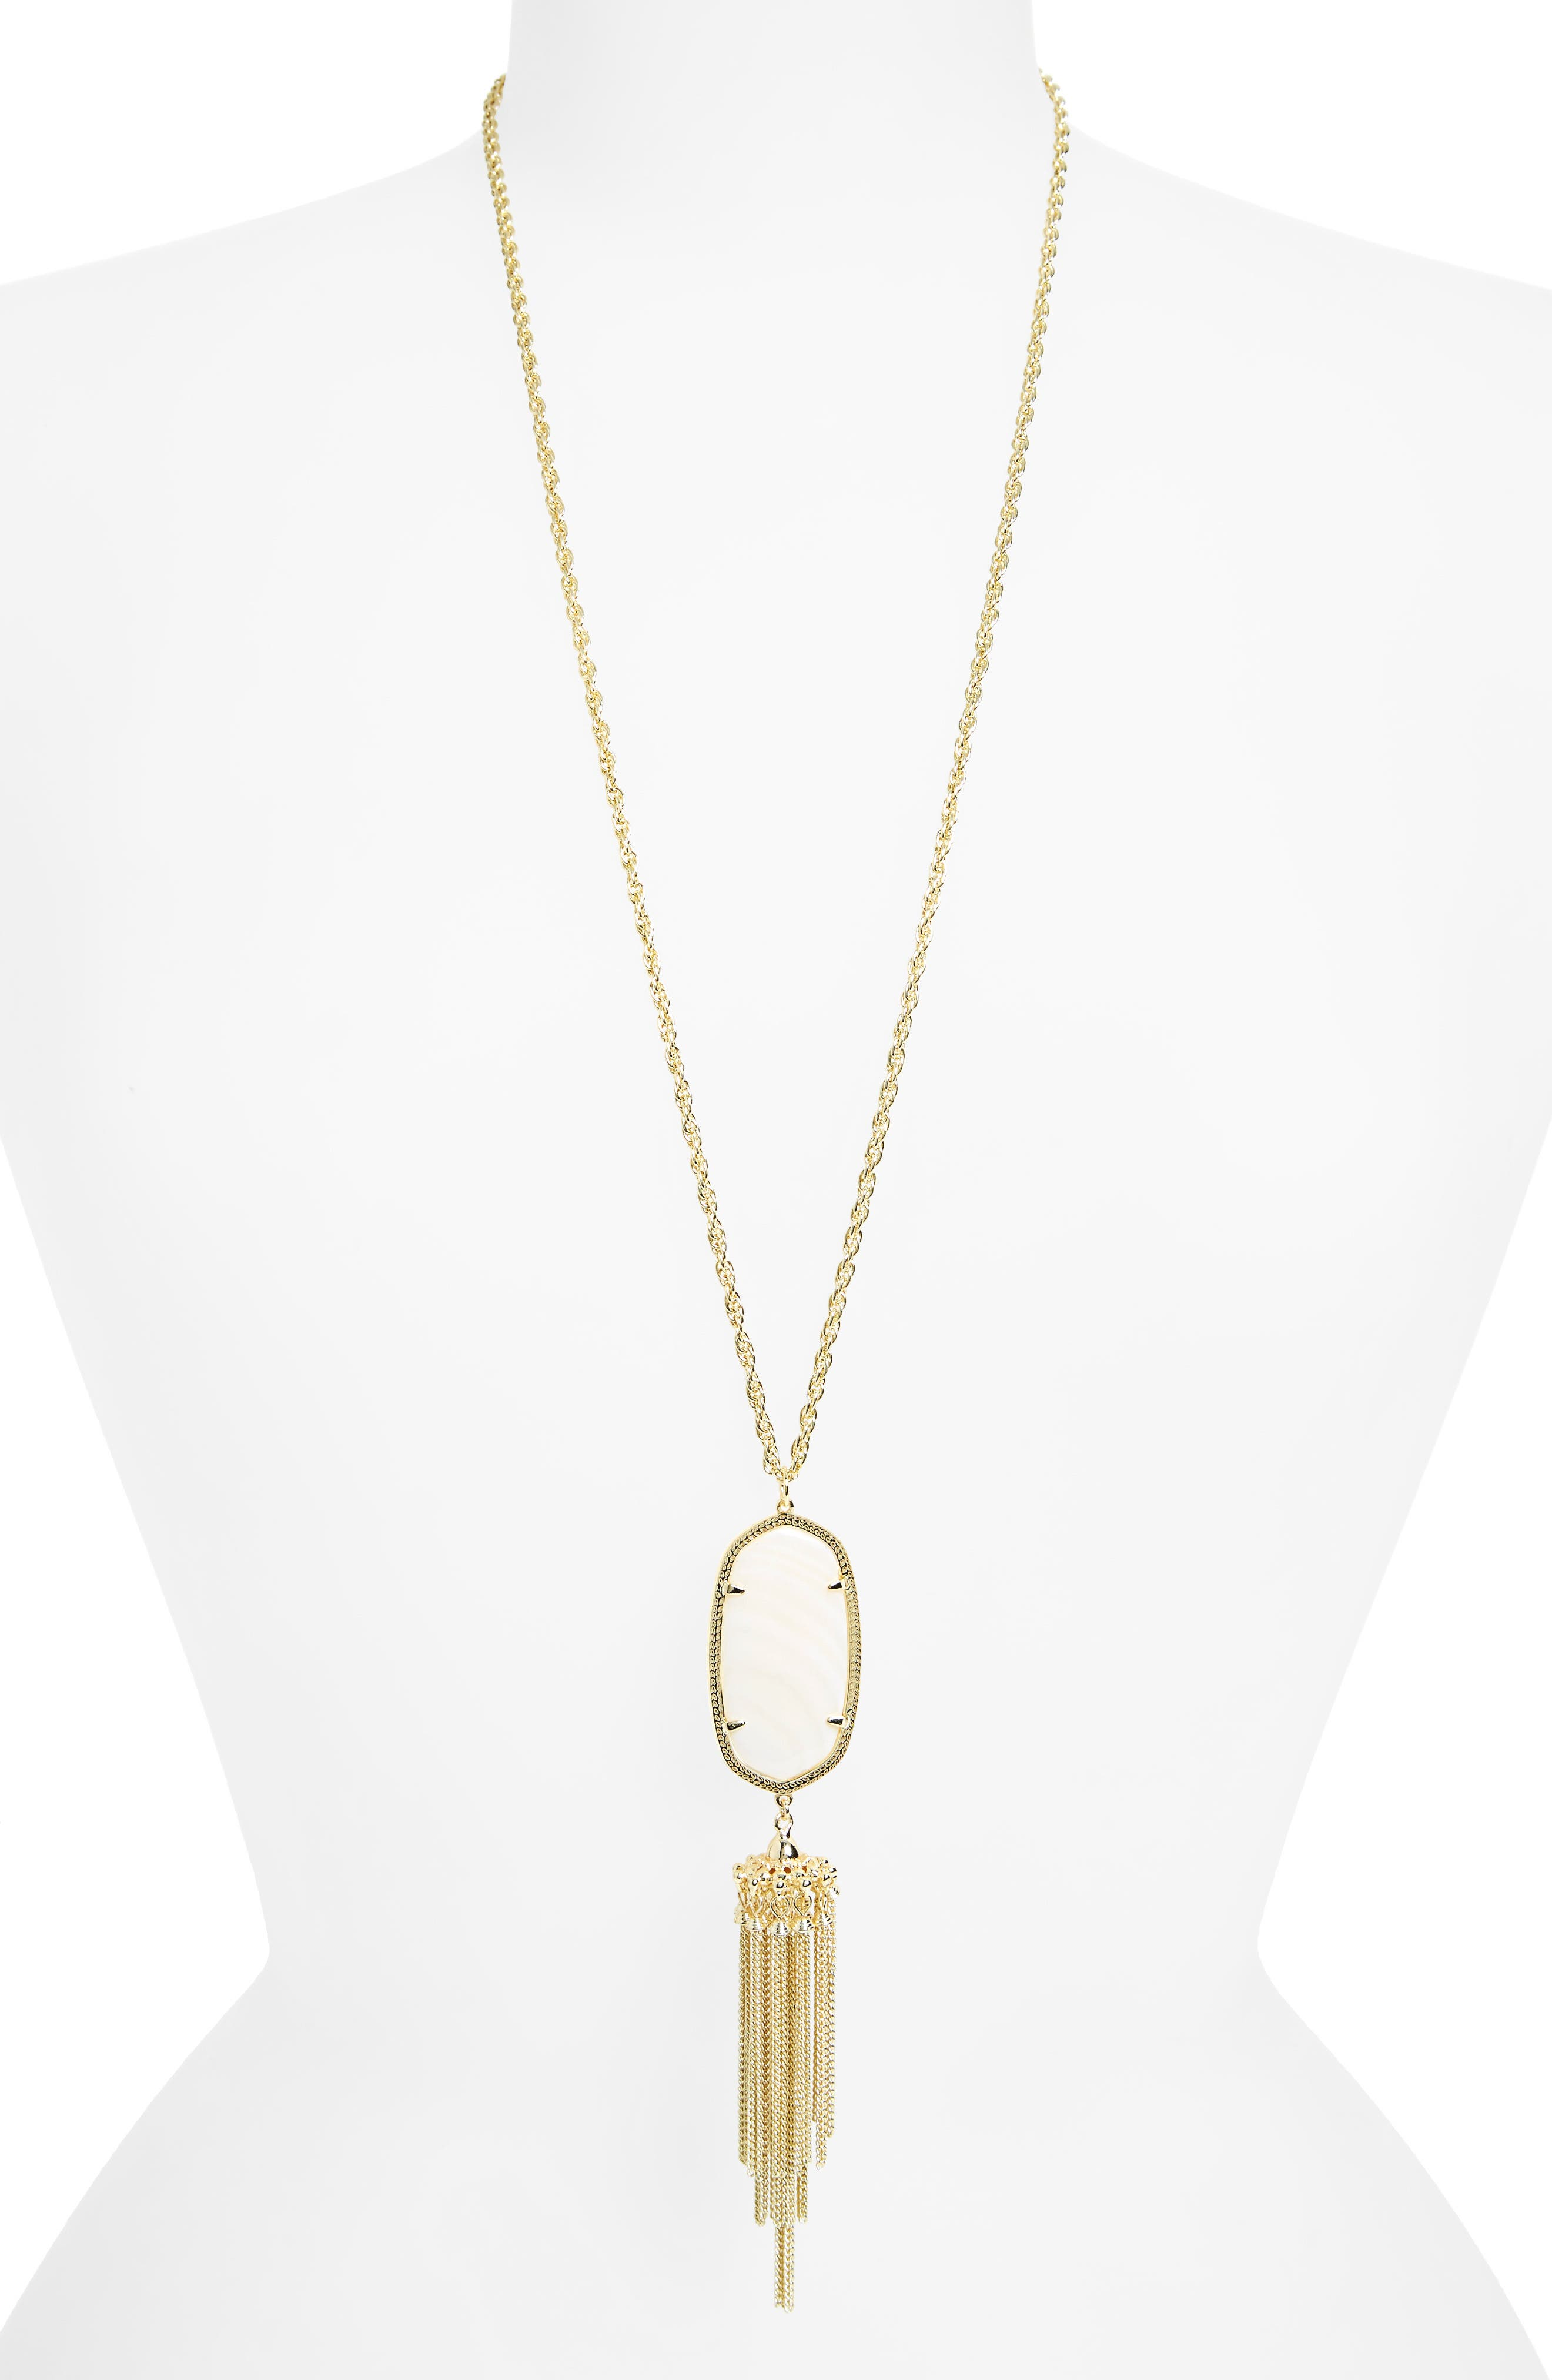 Rayne Stone Tassel Pendant Necklace,                         Main,                         color, White Mother Of Pearl/ Gold